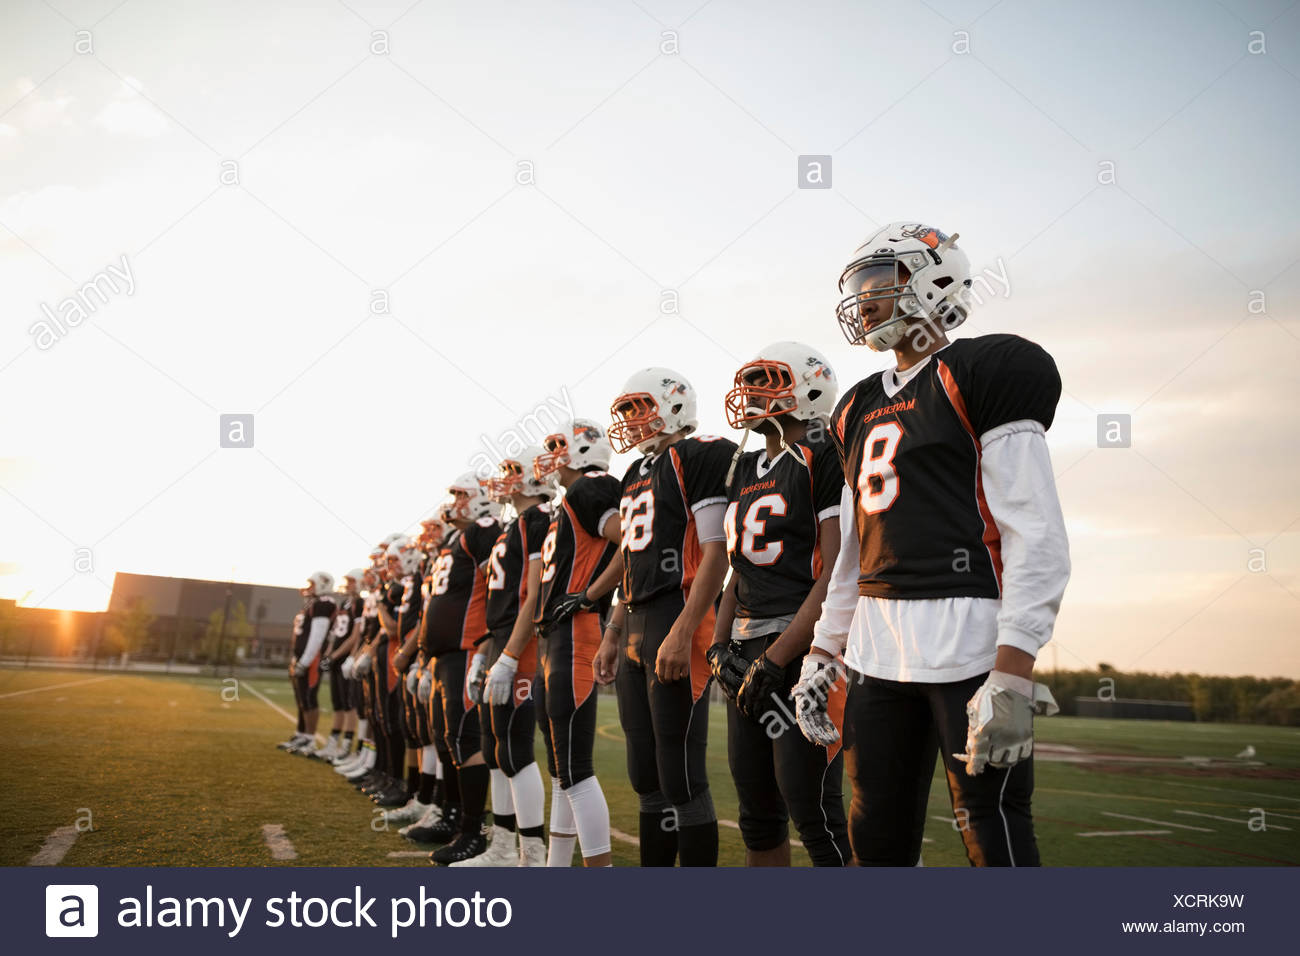 Teenage boy high school football team standing in a row sur terrain de football Photo Stock